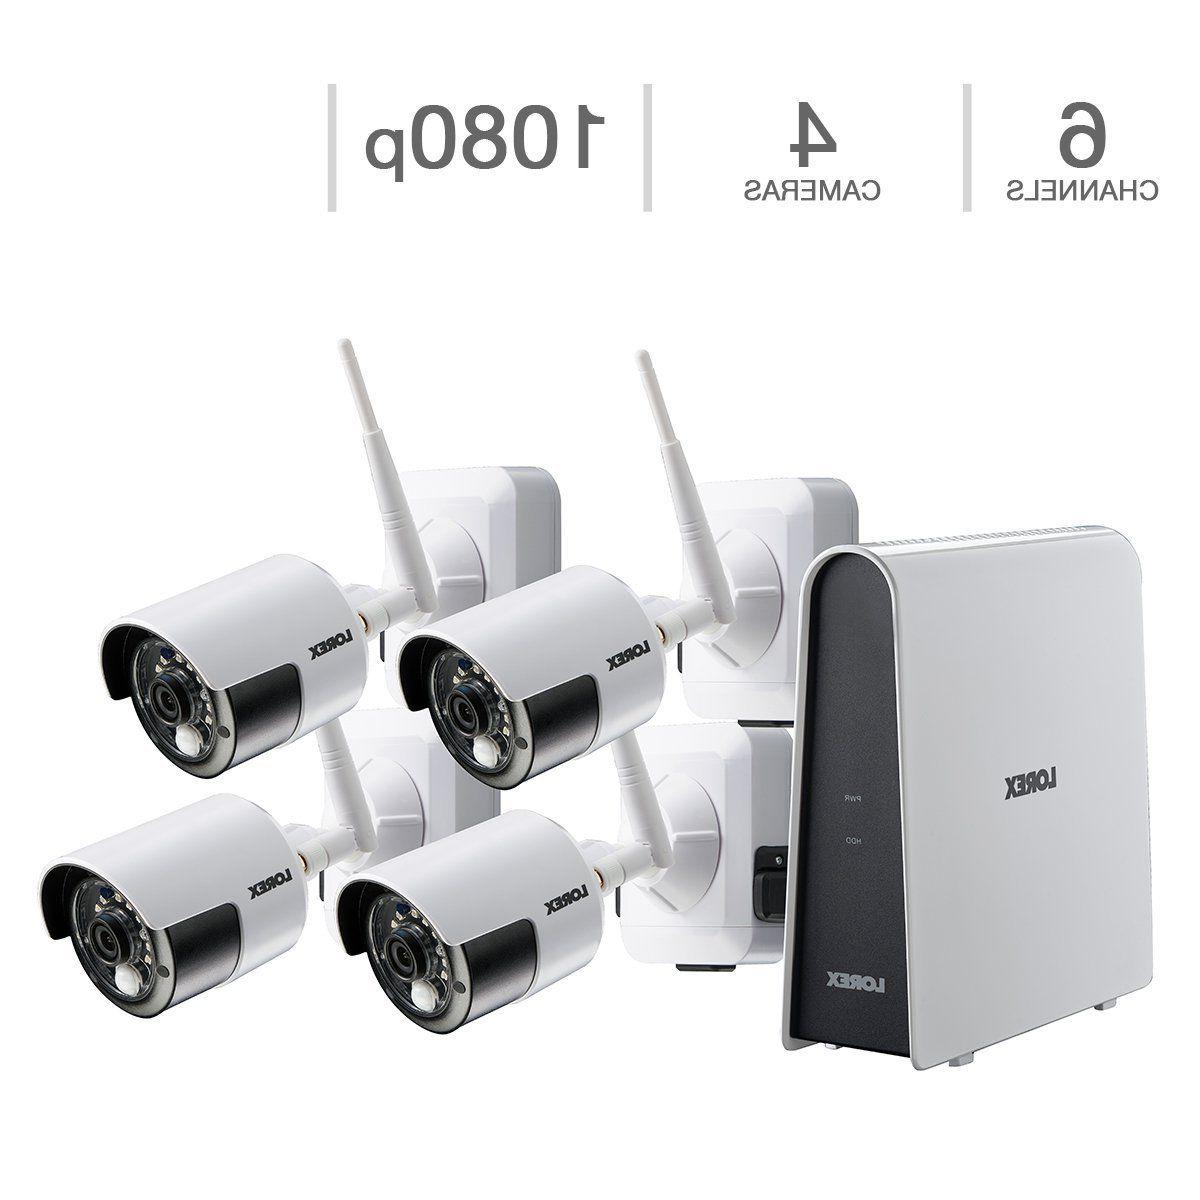 hd 1080p wire free security camera system